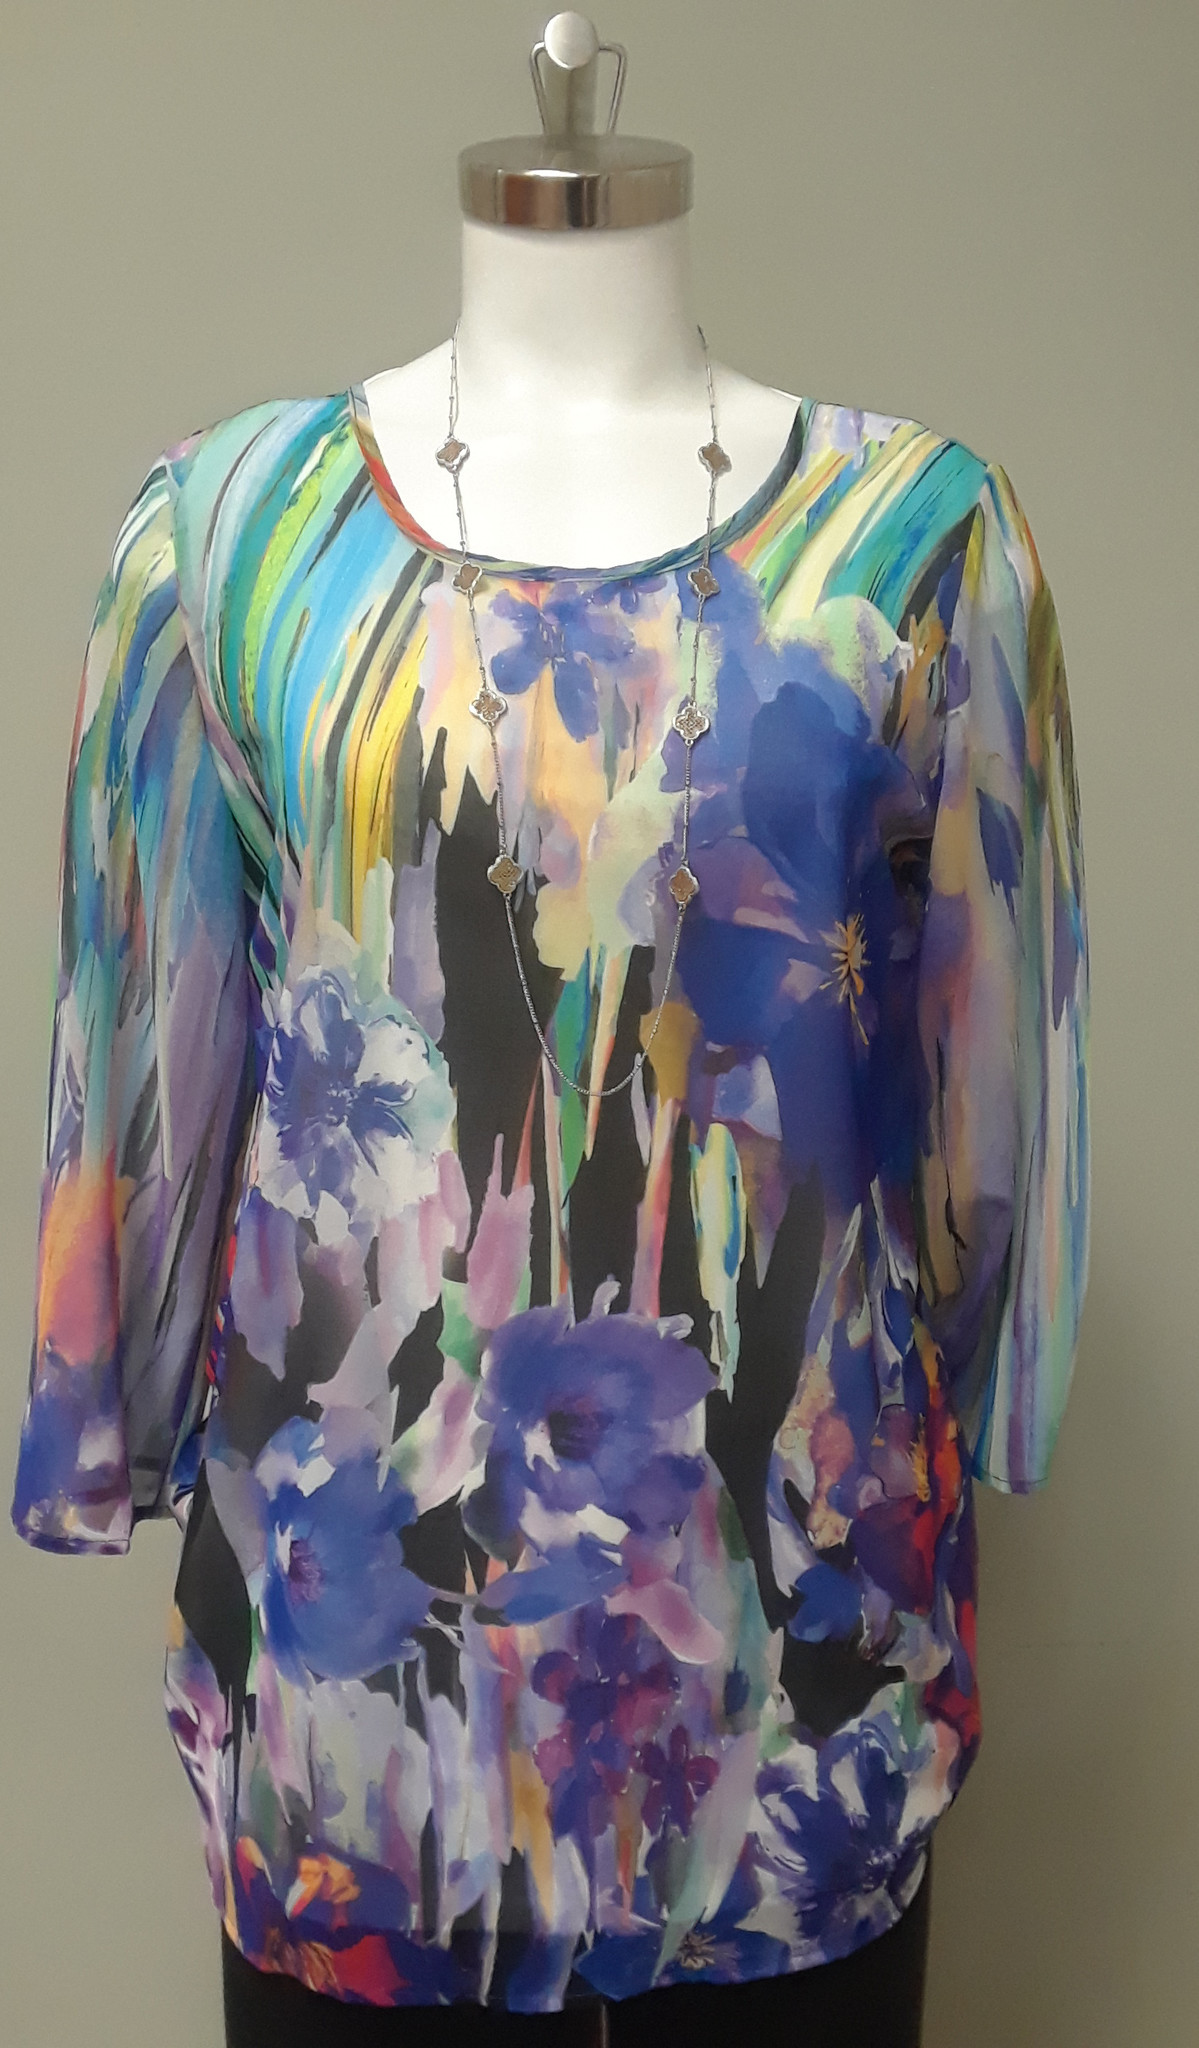 Artex Fashions Women's Floral Top